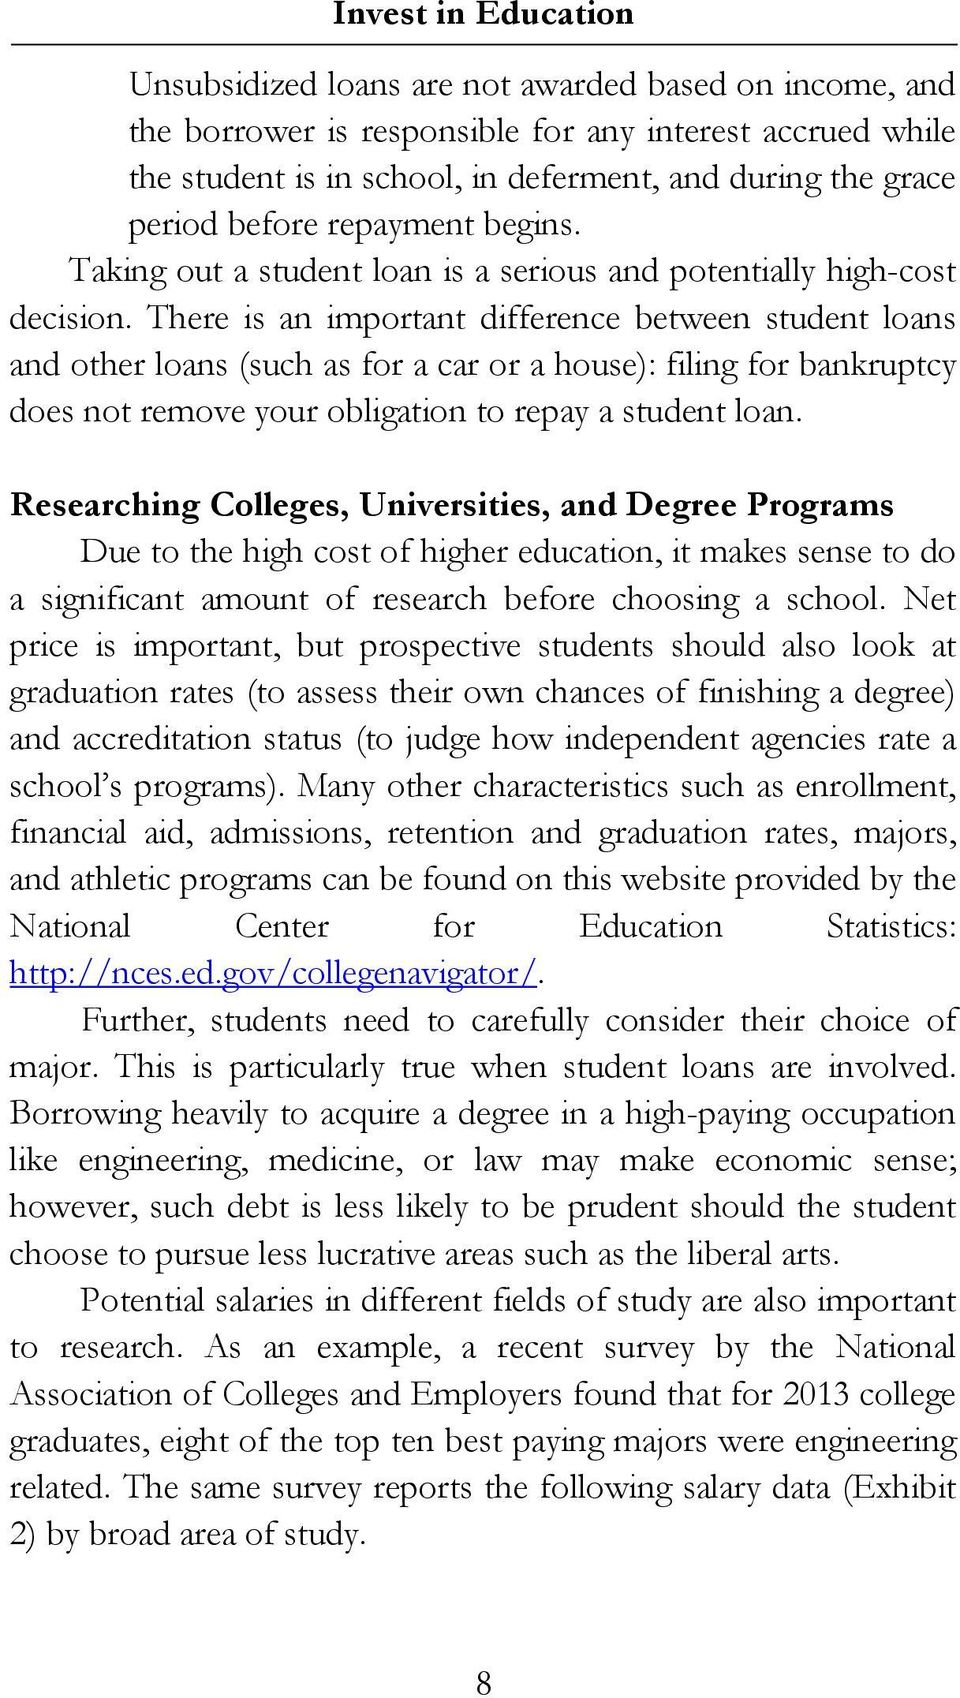 There is an important difference between student loans and other loans (such as for a car or a house): filing for bankruptcy does not remove your obligation to repay a student loan.